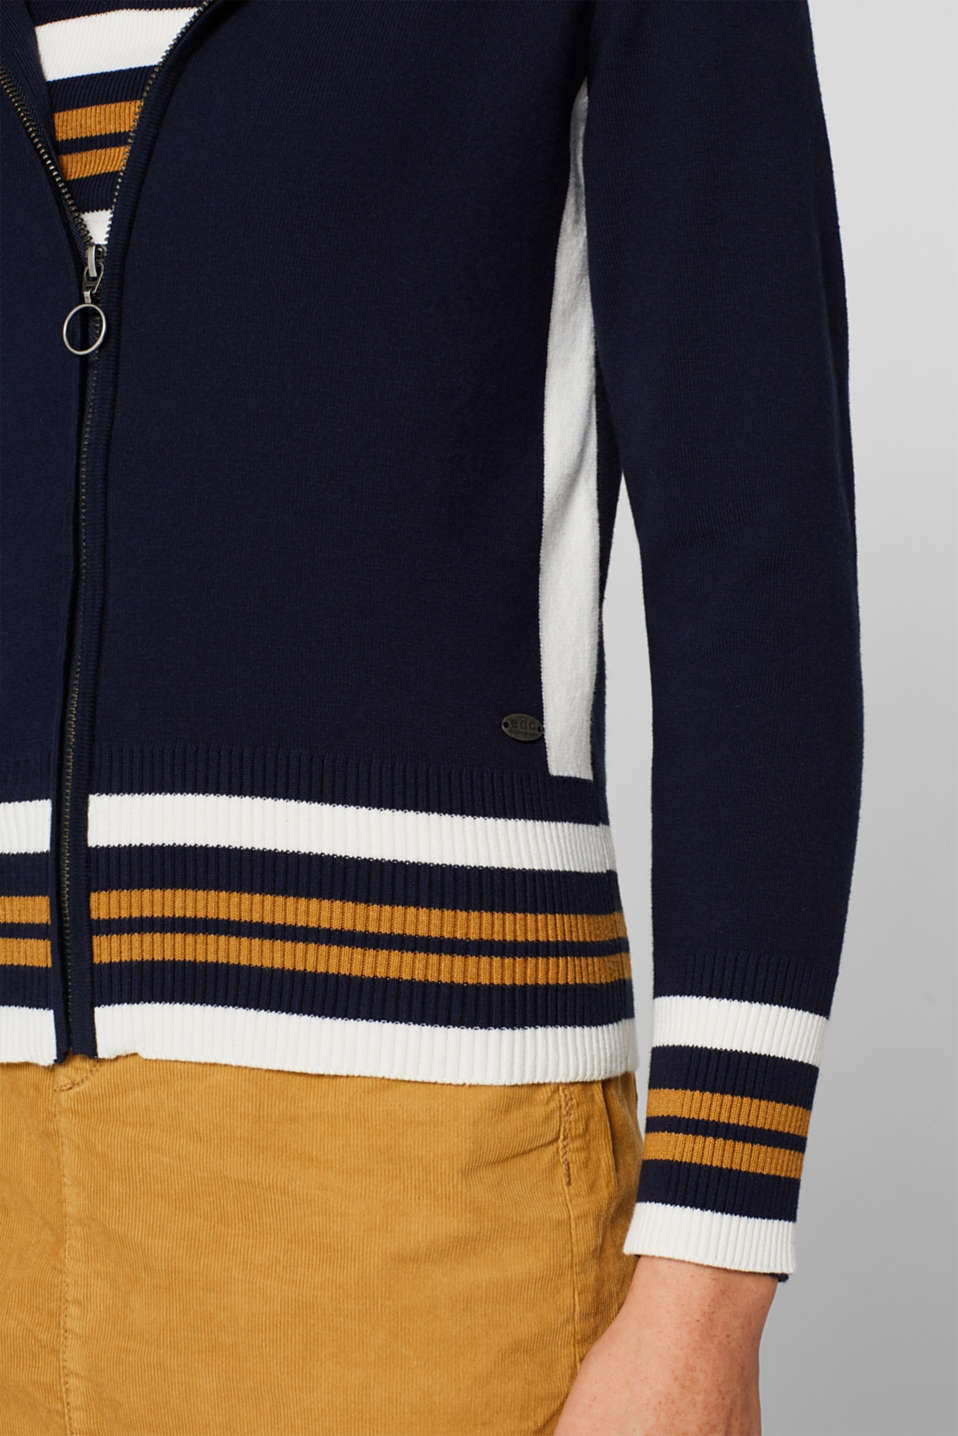 Knit cardigan with a hood and stripes, NAVY 3, detail image number 2